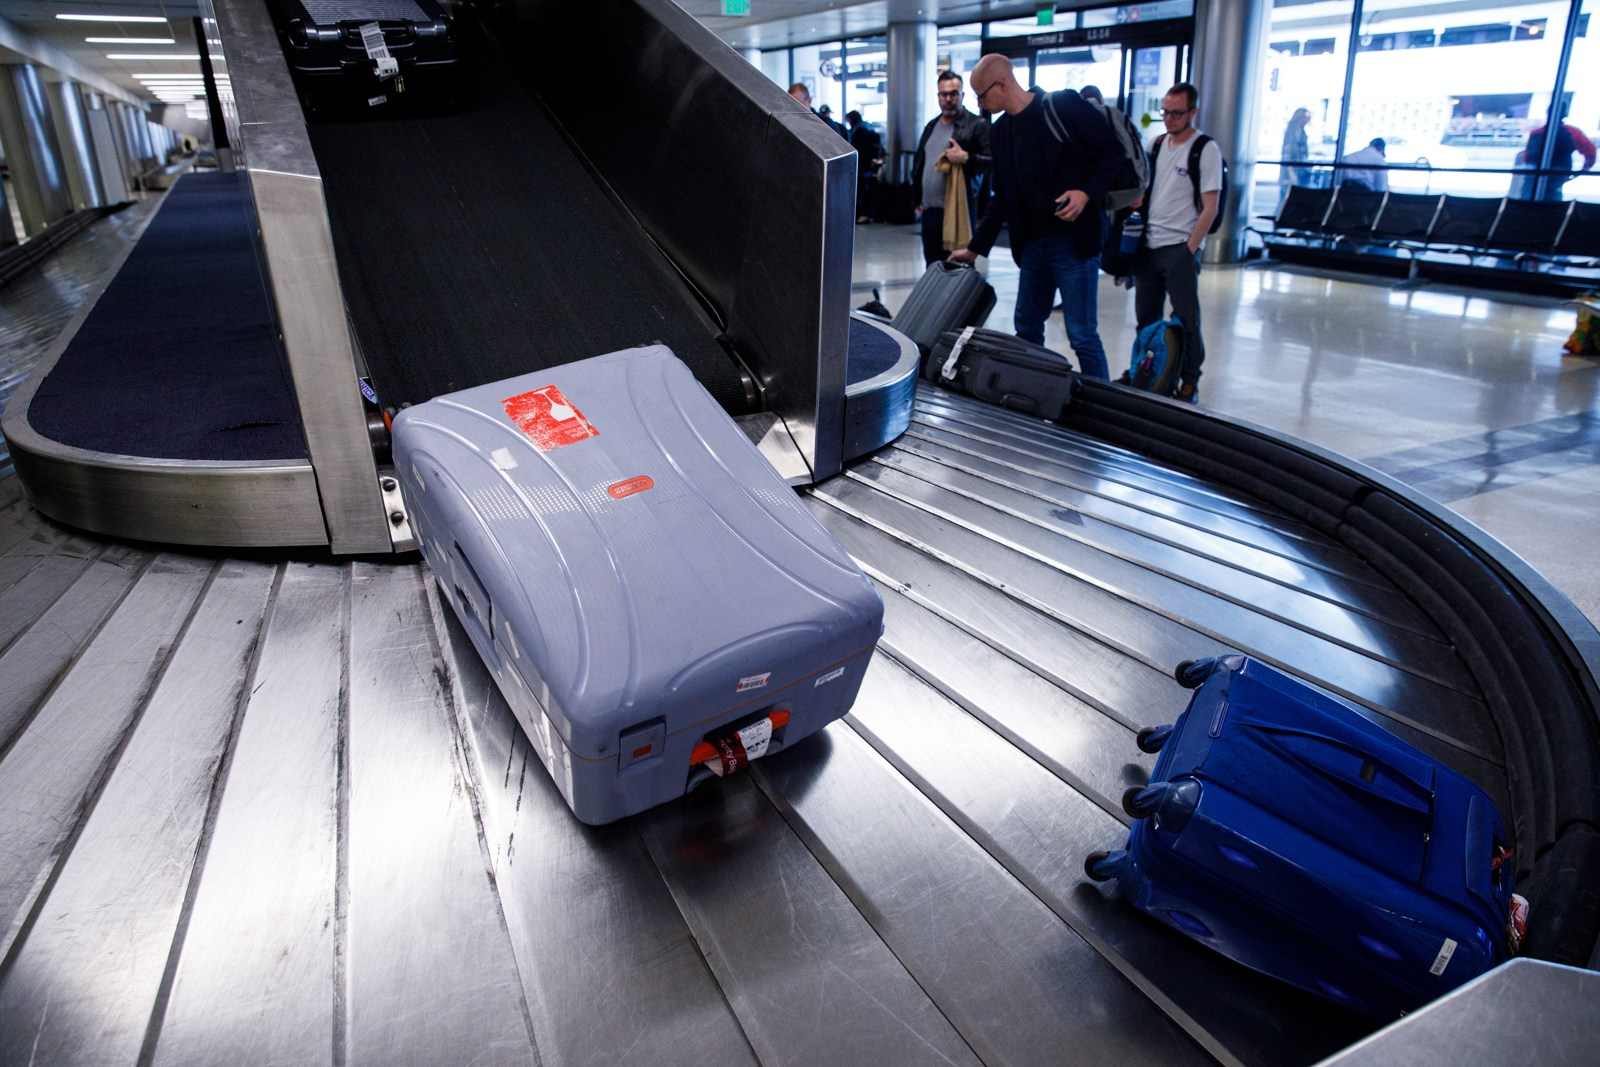 Baggage arrives from Delta Air Lines Inc. flights at Los Angeles International Airport (LAX) on Friday, March 29, 2019 in Los Angeles, Calif. © 2019 Patrick T. Fallon for The Points Guy